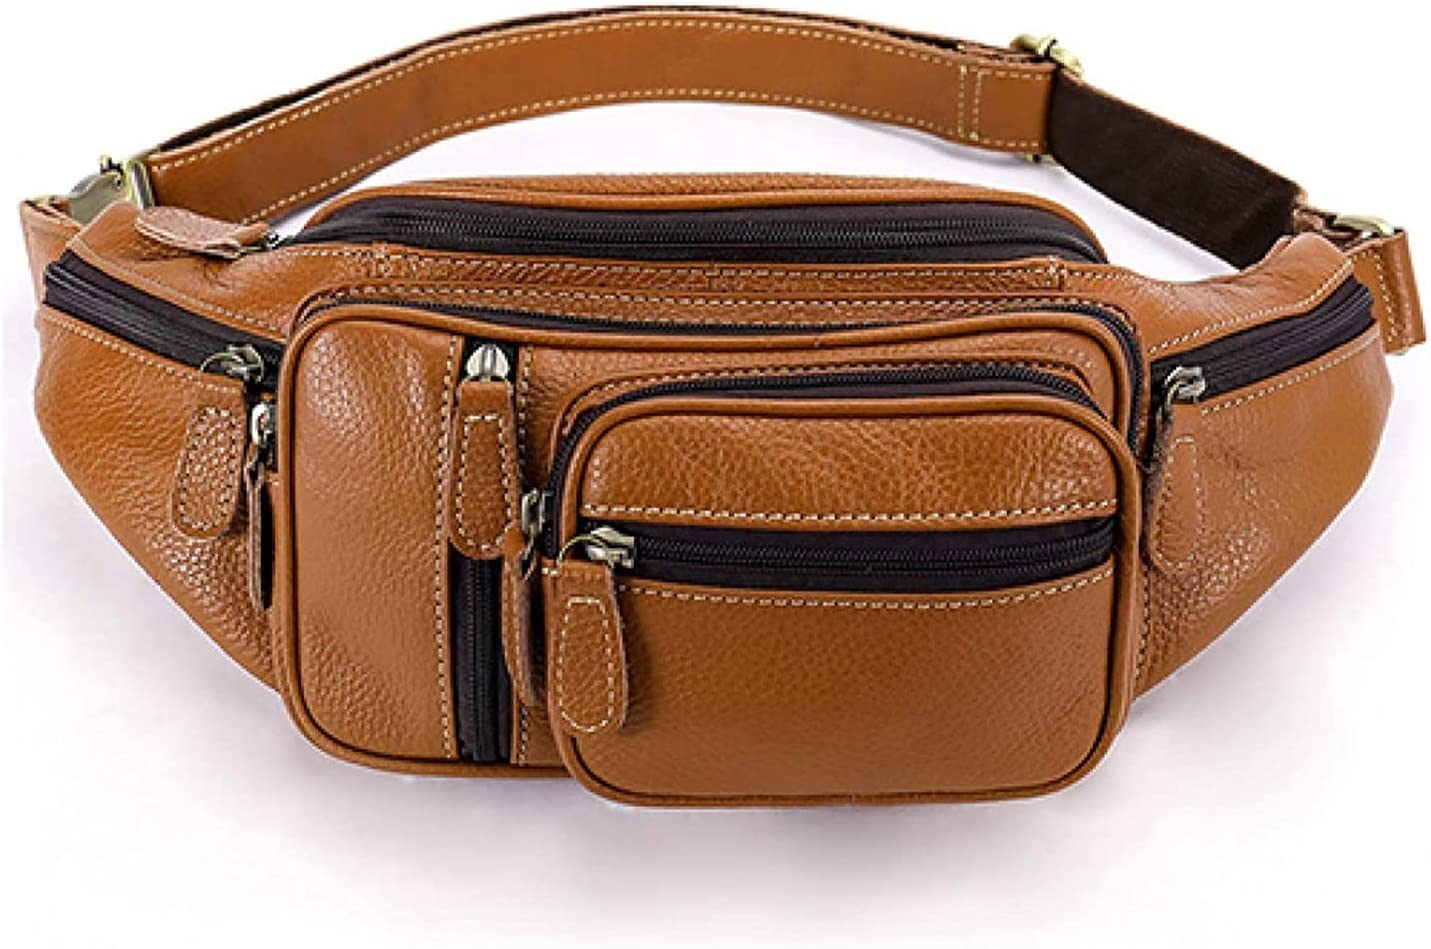 Outlet ☆ Free Shipping DSWHM Fanny Pack Waist Bag Omaha Mall Hip Leather Bum Tra Multifunction